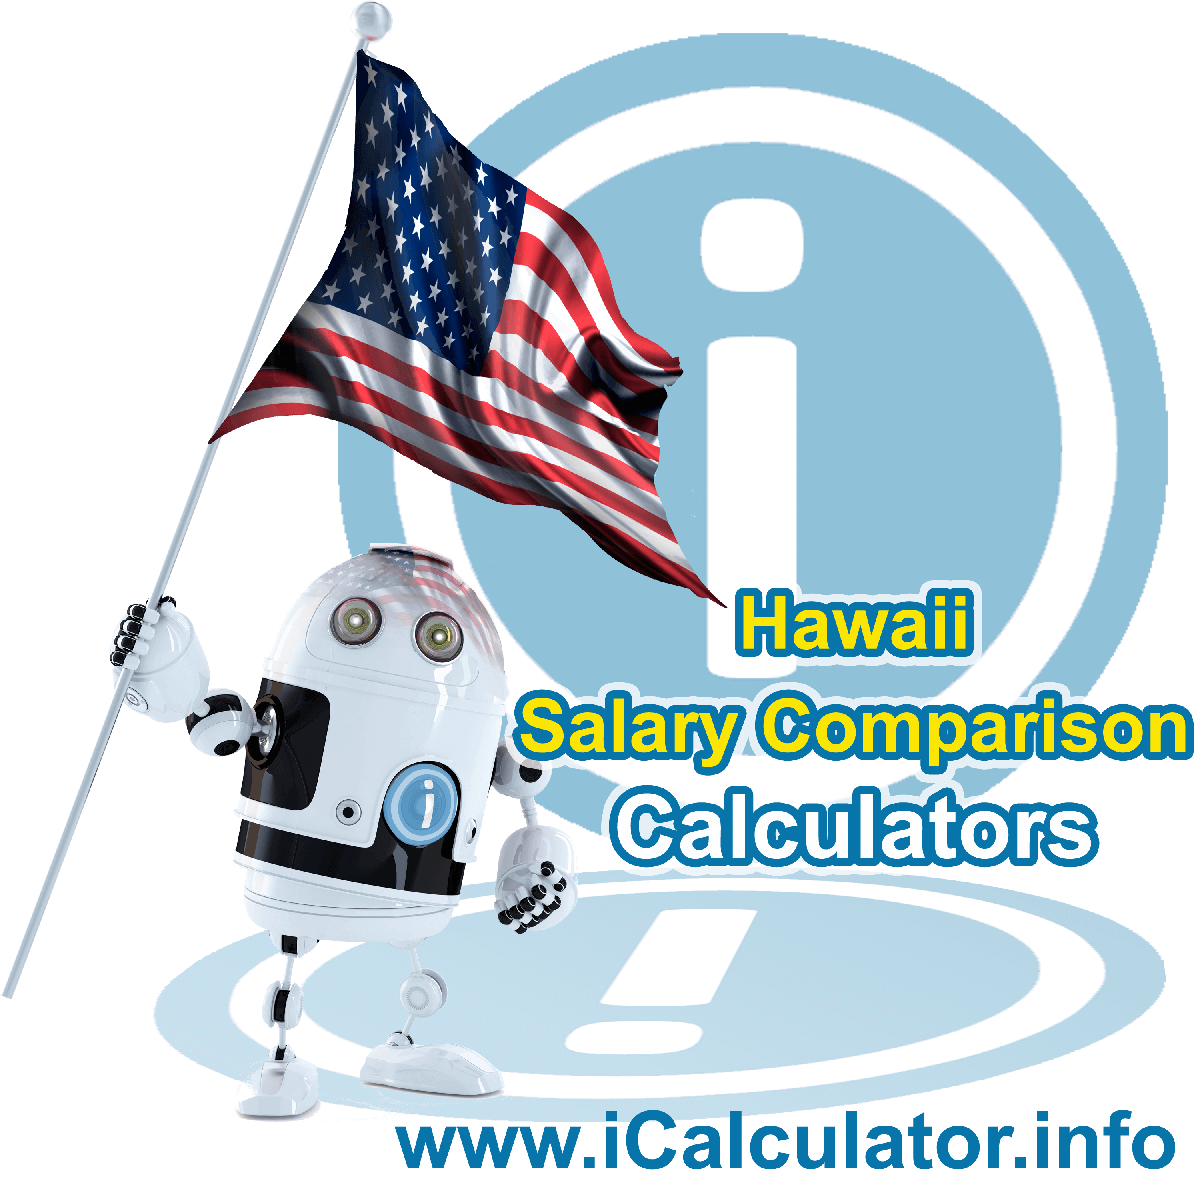 Hawaii Salary Comparison Calculator 2020 | iCalculator | The Hawaii Salary Comparison Calculator allows you to quickly calculate and compare upto 6 salaries in Hawaii or between other states for the 2020 tax year and historical tax years. Its an excellent tool for jobseekers, pay raise comparison and comparison of salaries between different US States